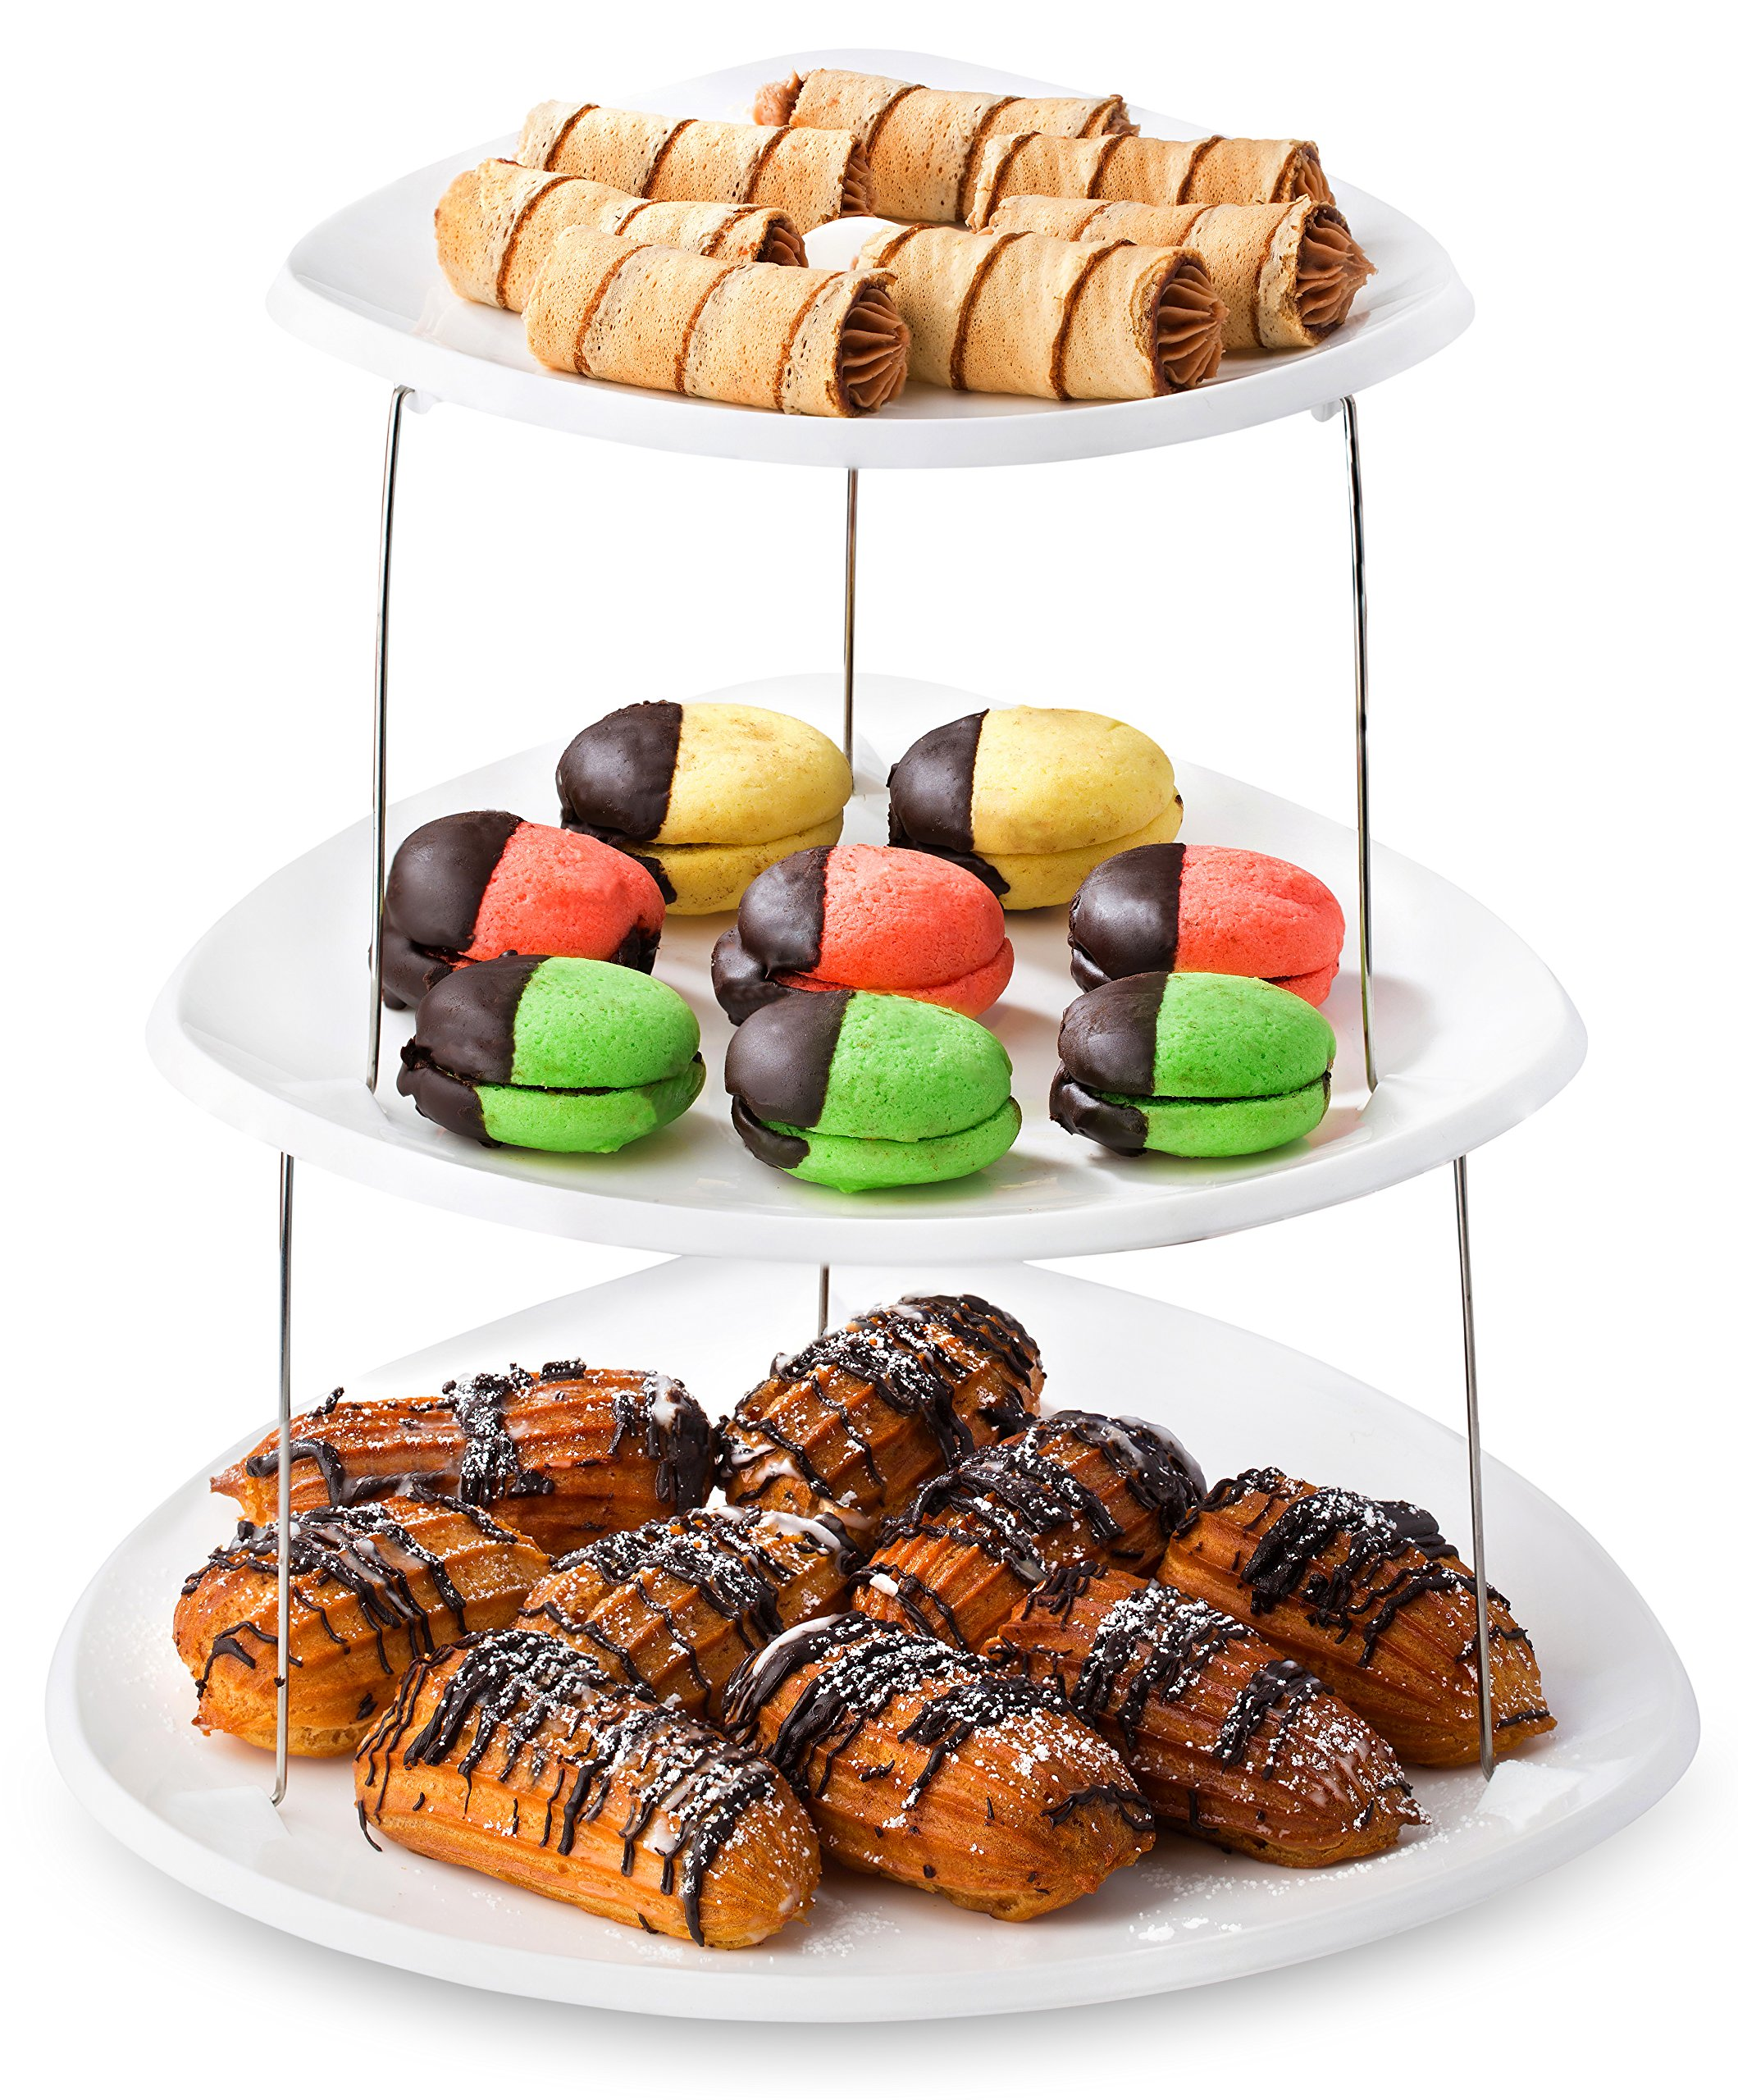 Twist Fold Party Tray, 3 Tier - The Decorative Plastic Appetizer Trays Twist Down and Fold Inside for Minimal Storage Space. An Elegant Tray for Serving Sandwiches, Cake, Sliced Cheese and Deli Meat. by Masirs